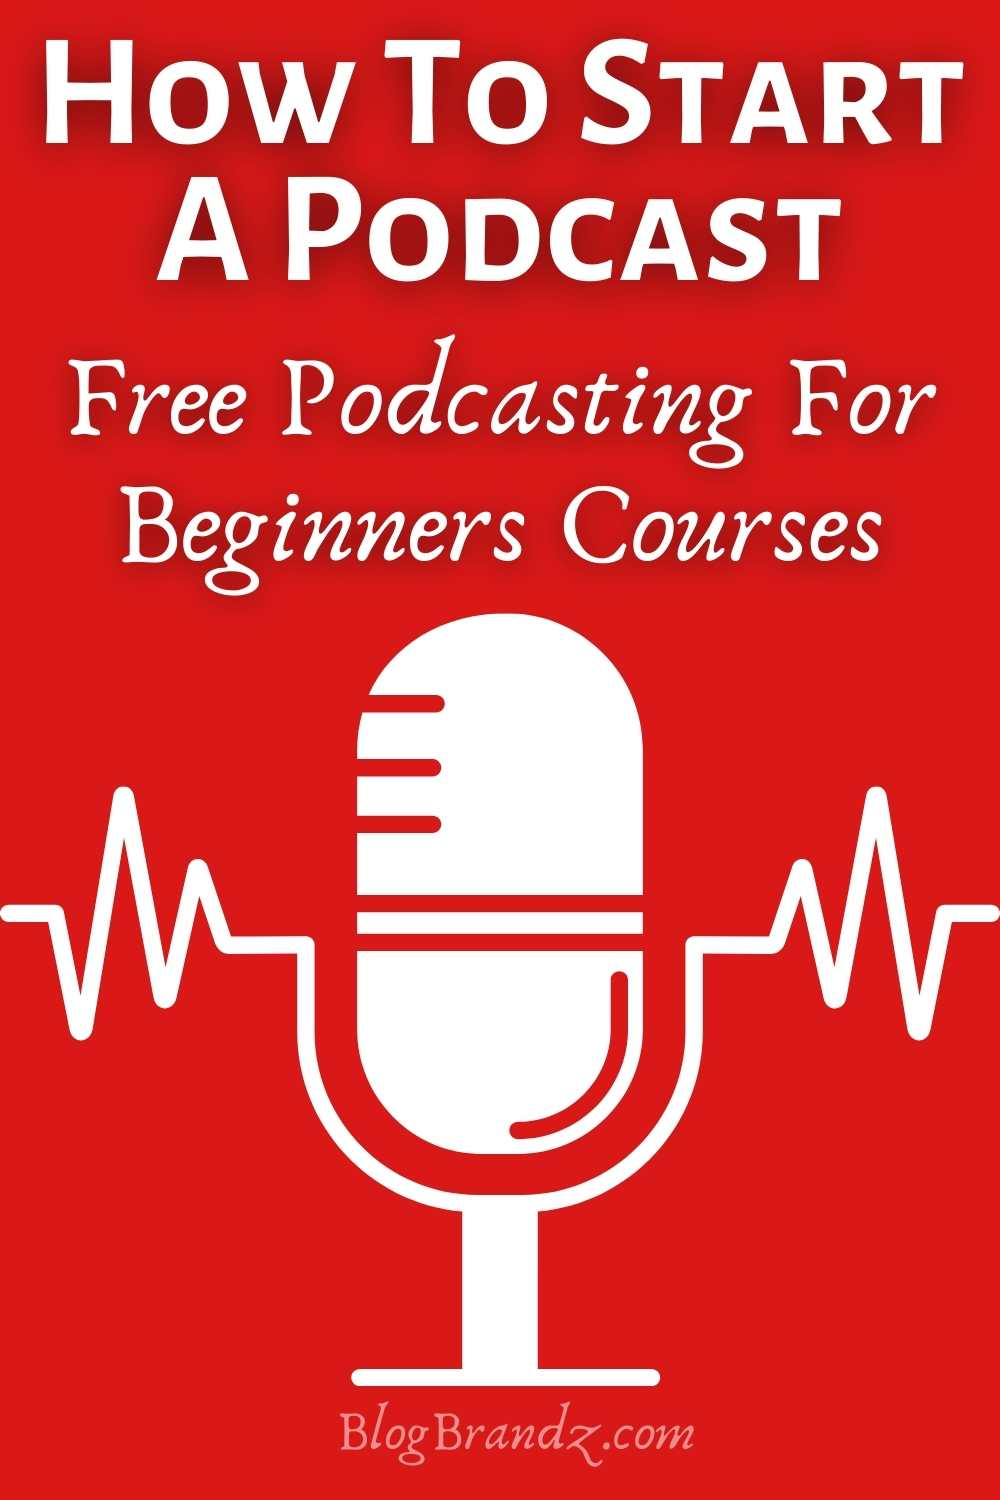 How To Start A Podcast Podcasting Tools Services Courses Tutorials Starting A Podcast Podcast Tips Blog Social Media